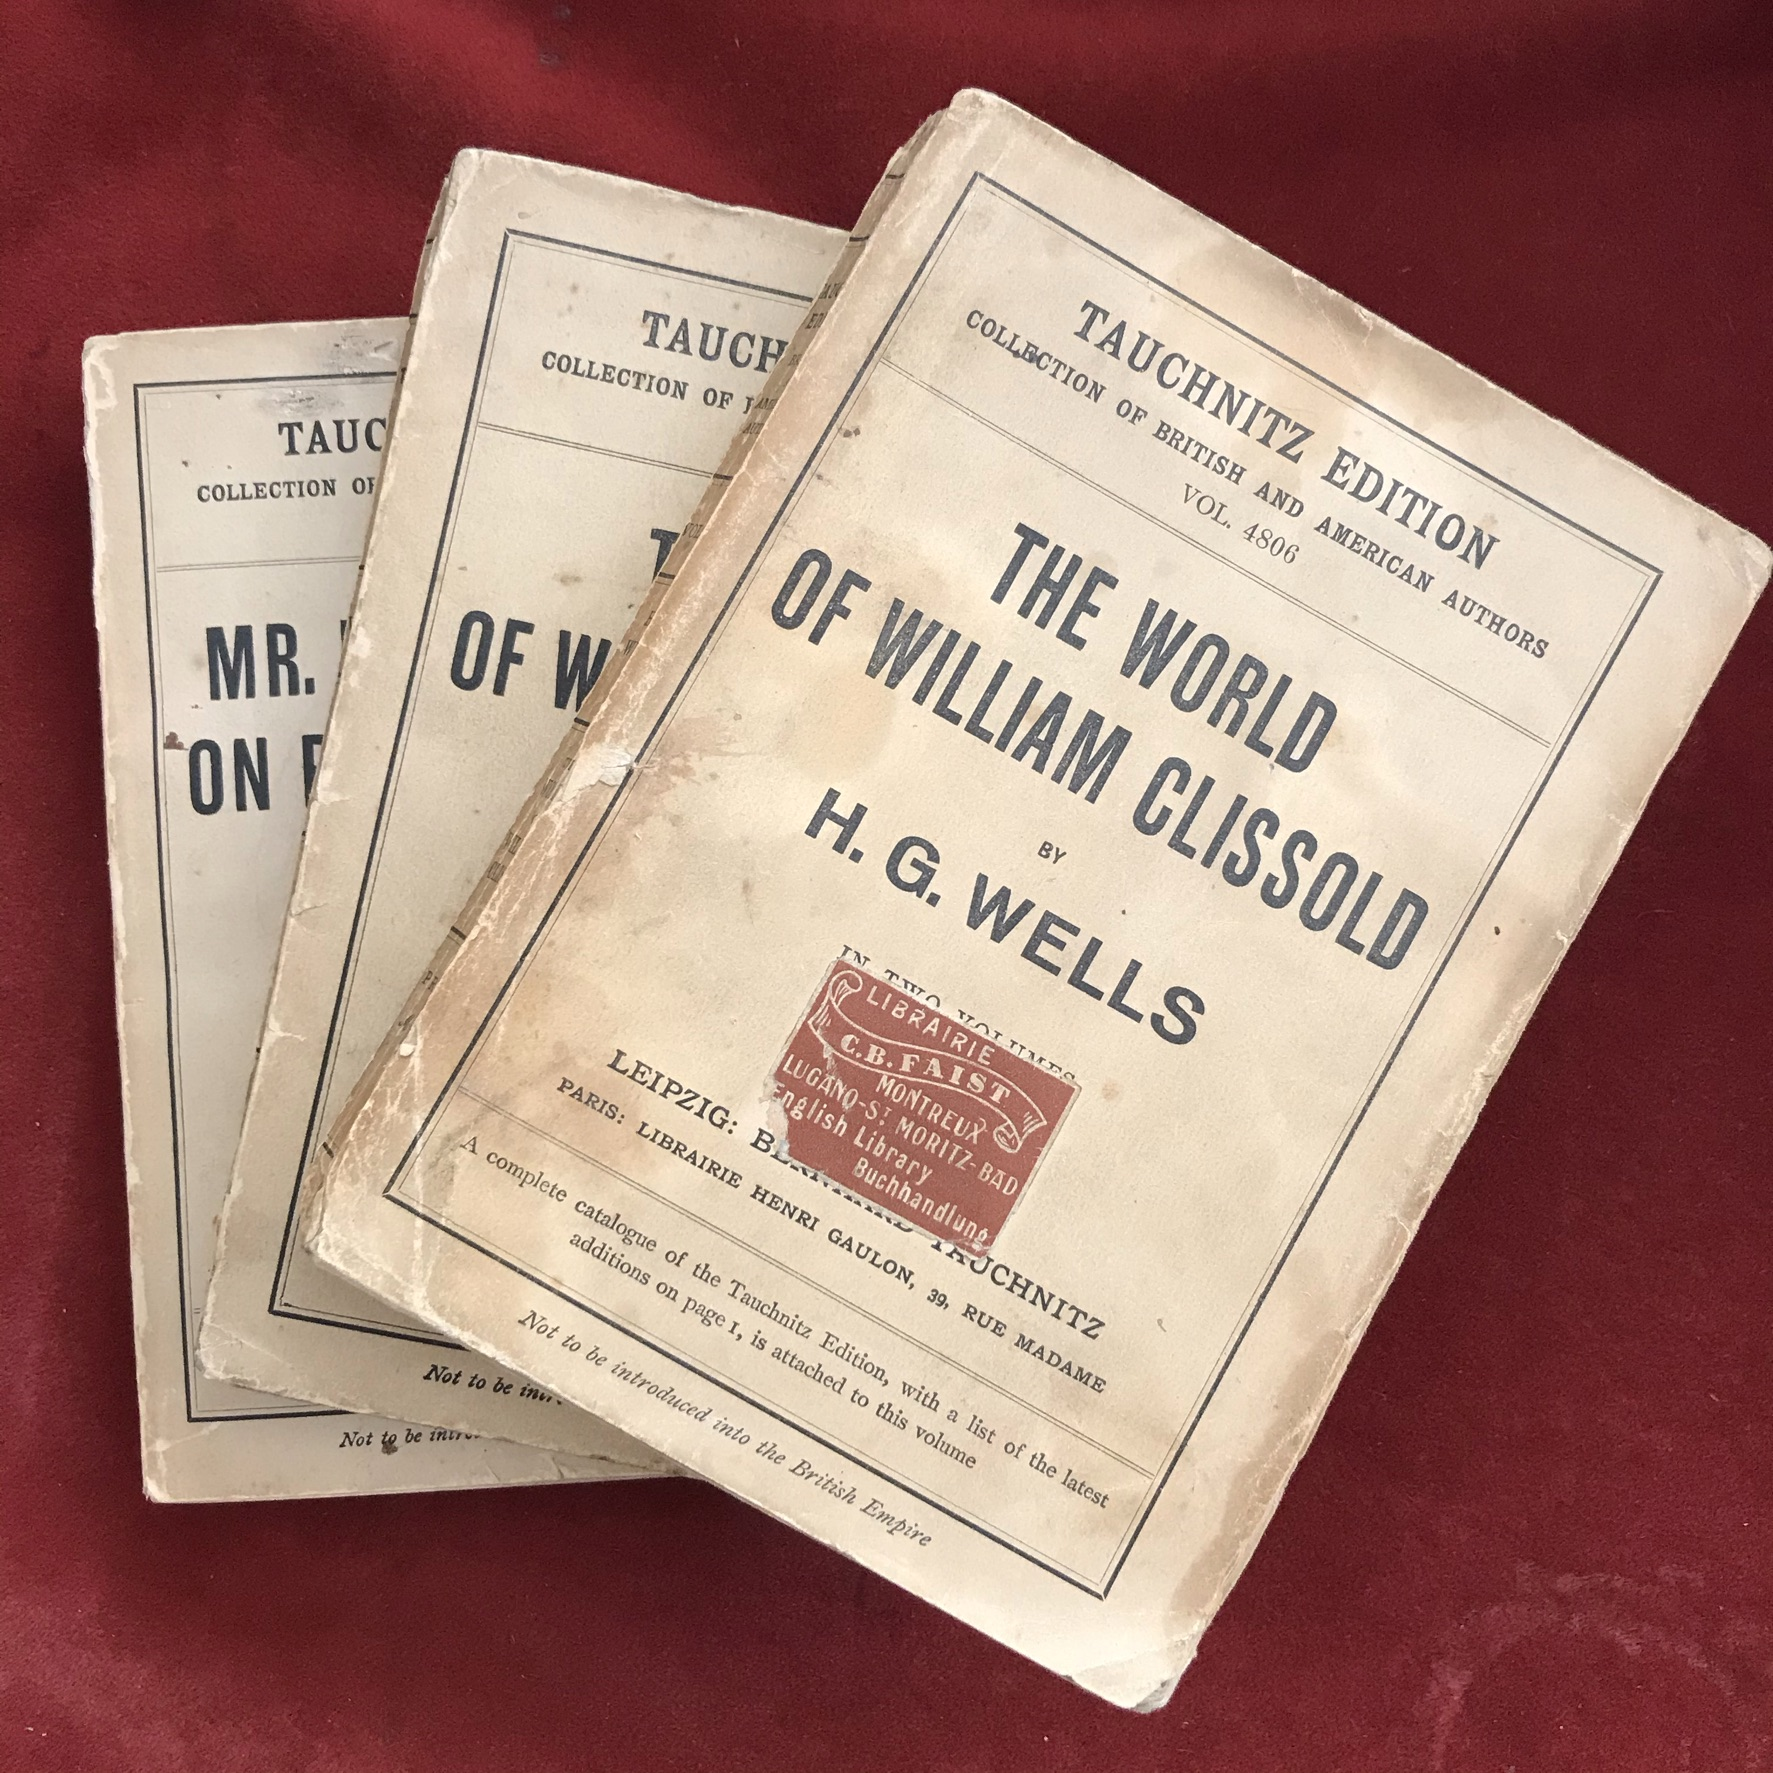 The World of William Clissold 3 volumesFirst edition with D/W, one volume with faded spine, - Image 3 of 3